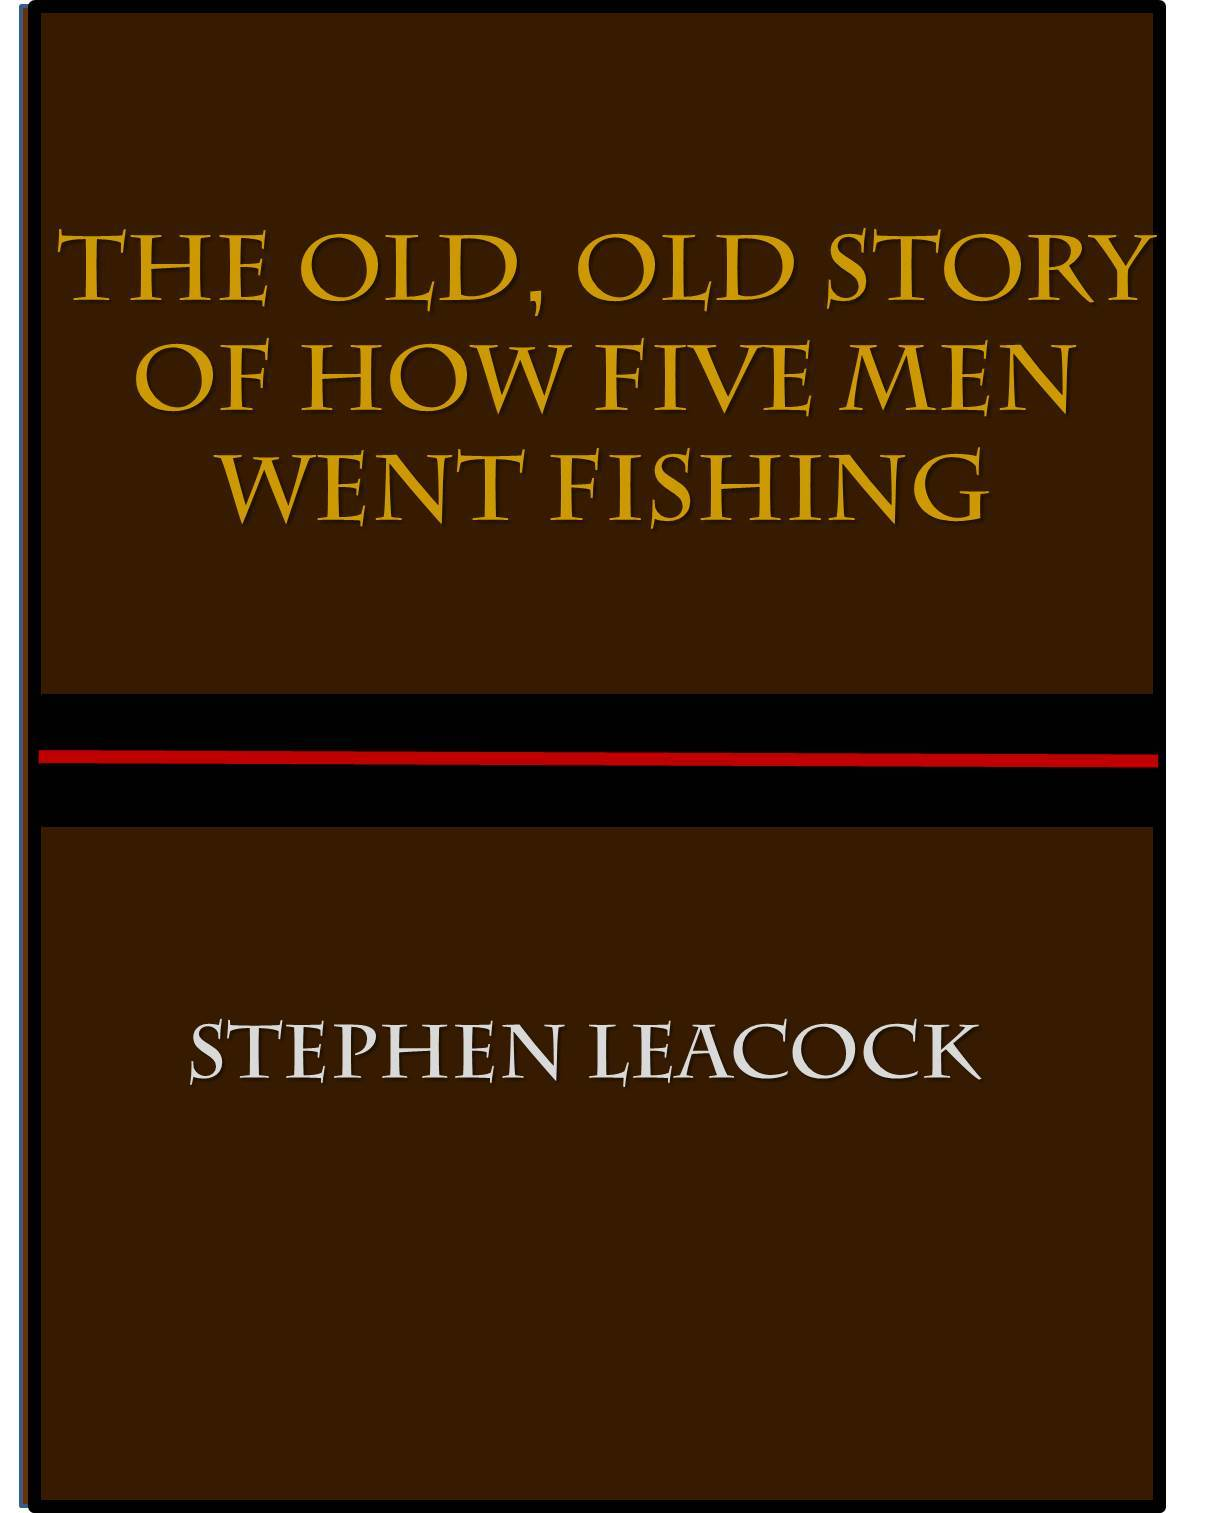 The Old, Old Story of How Five Men Went Fishing Stephen Leacock